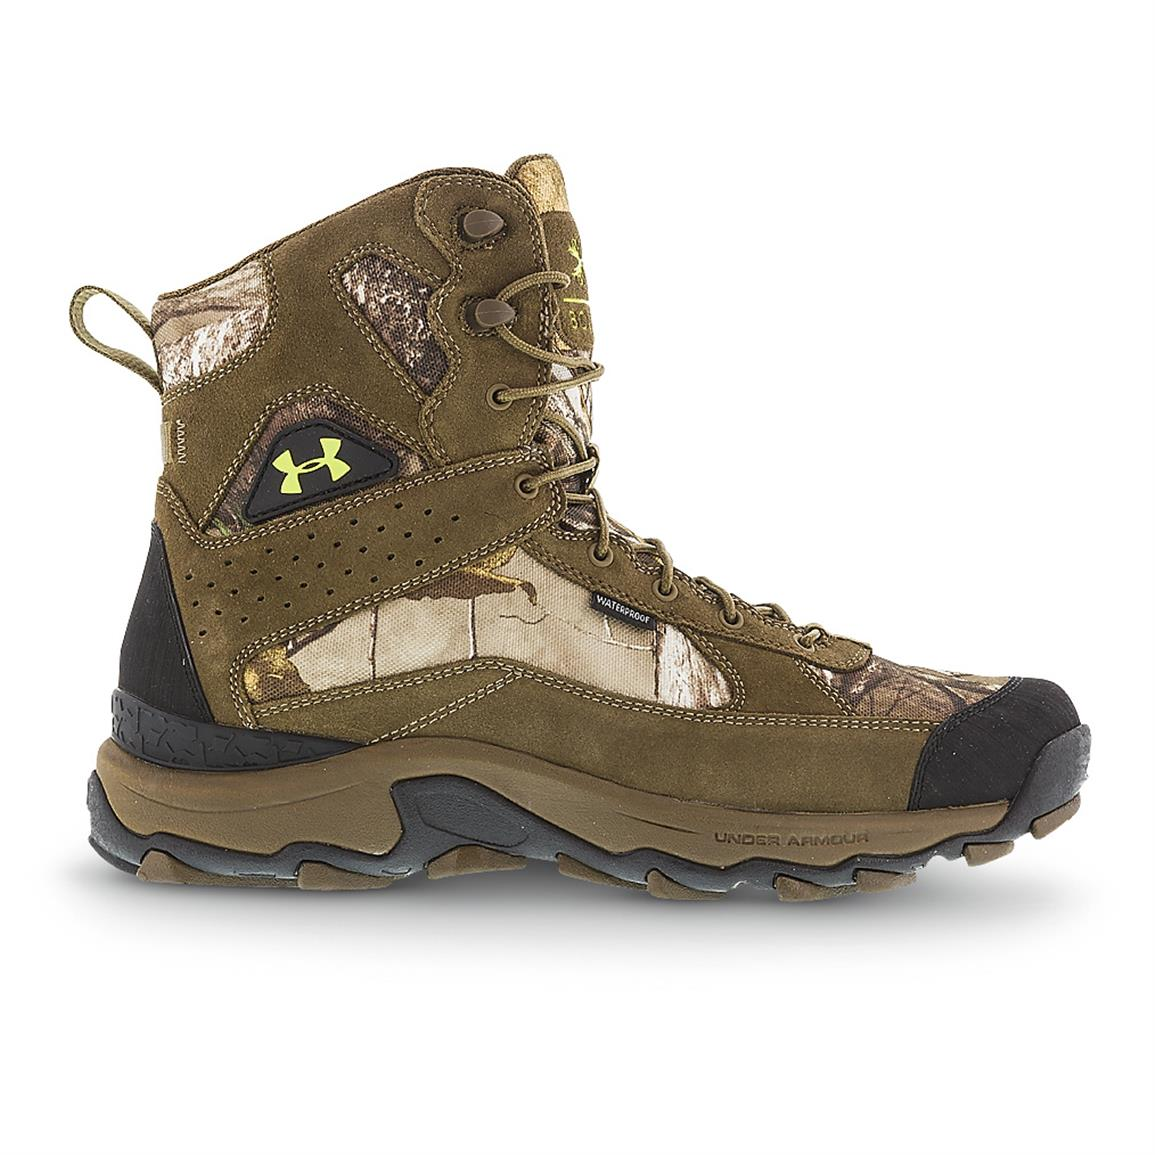 Men's Under Armour Speed Freeks Bozeman Boots, Realtree AP Xtra